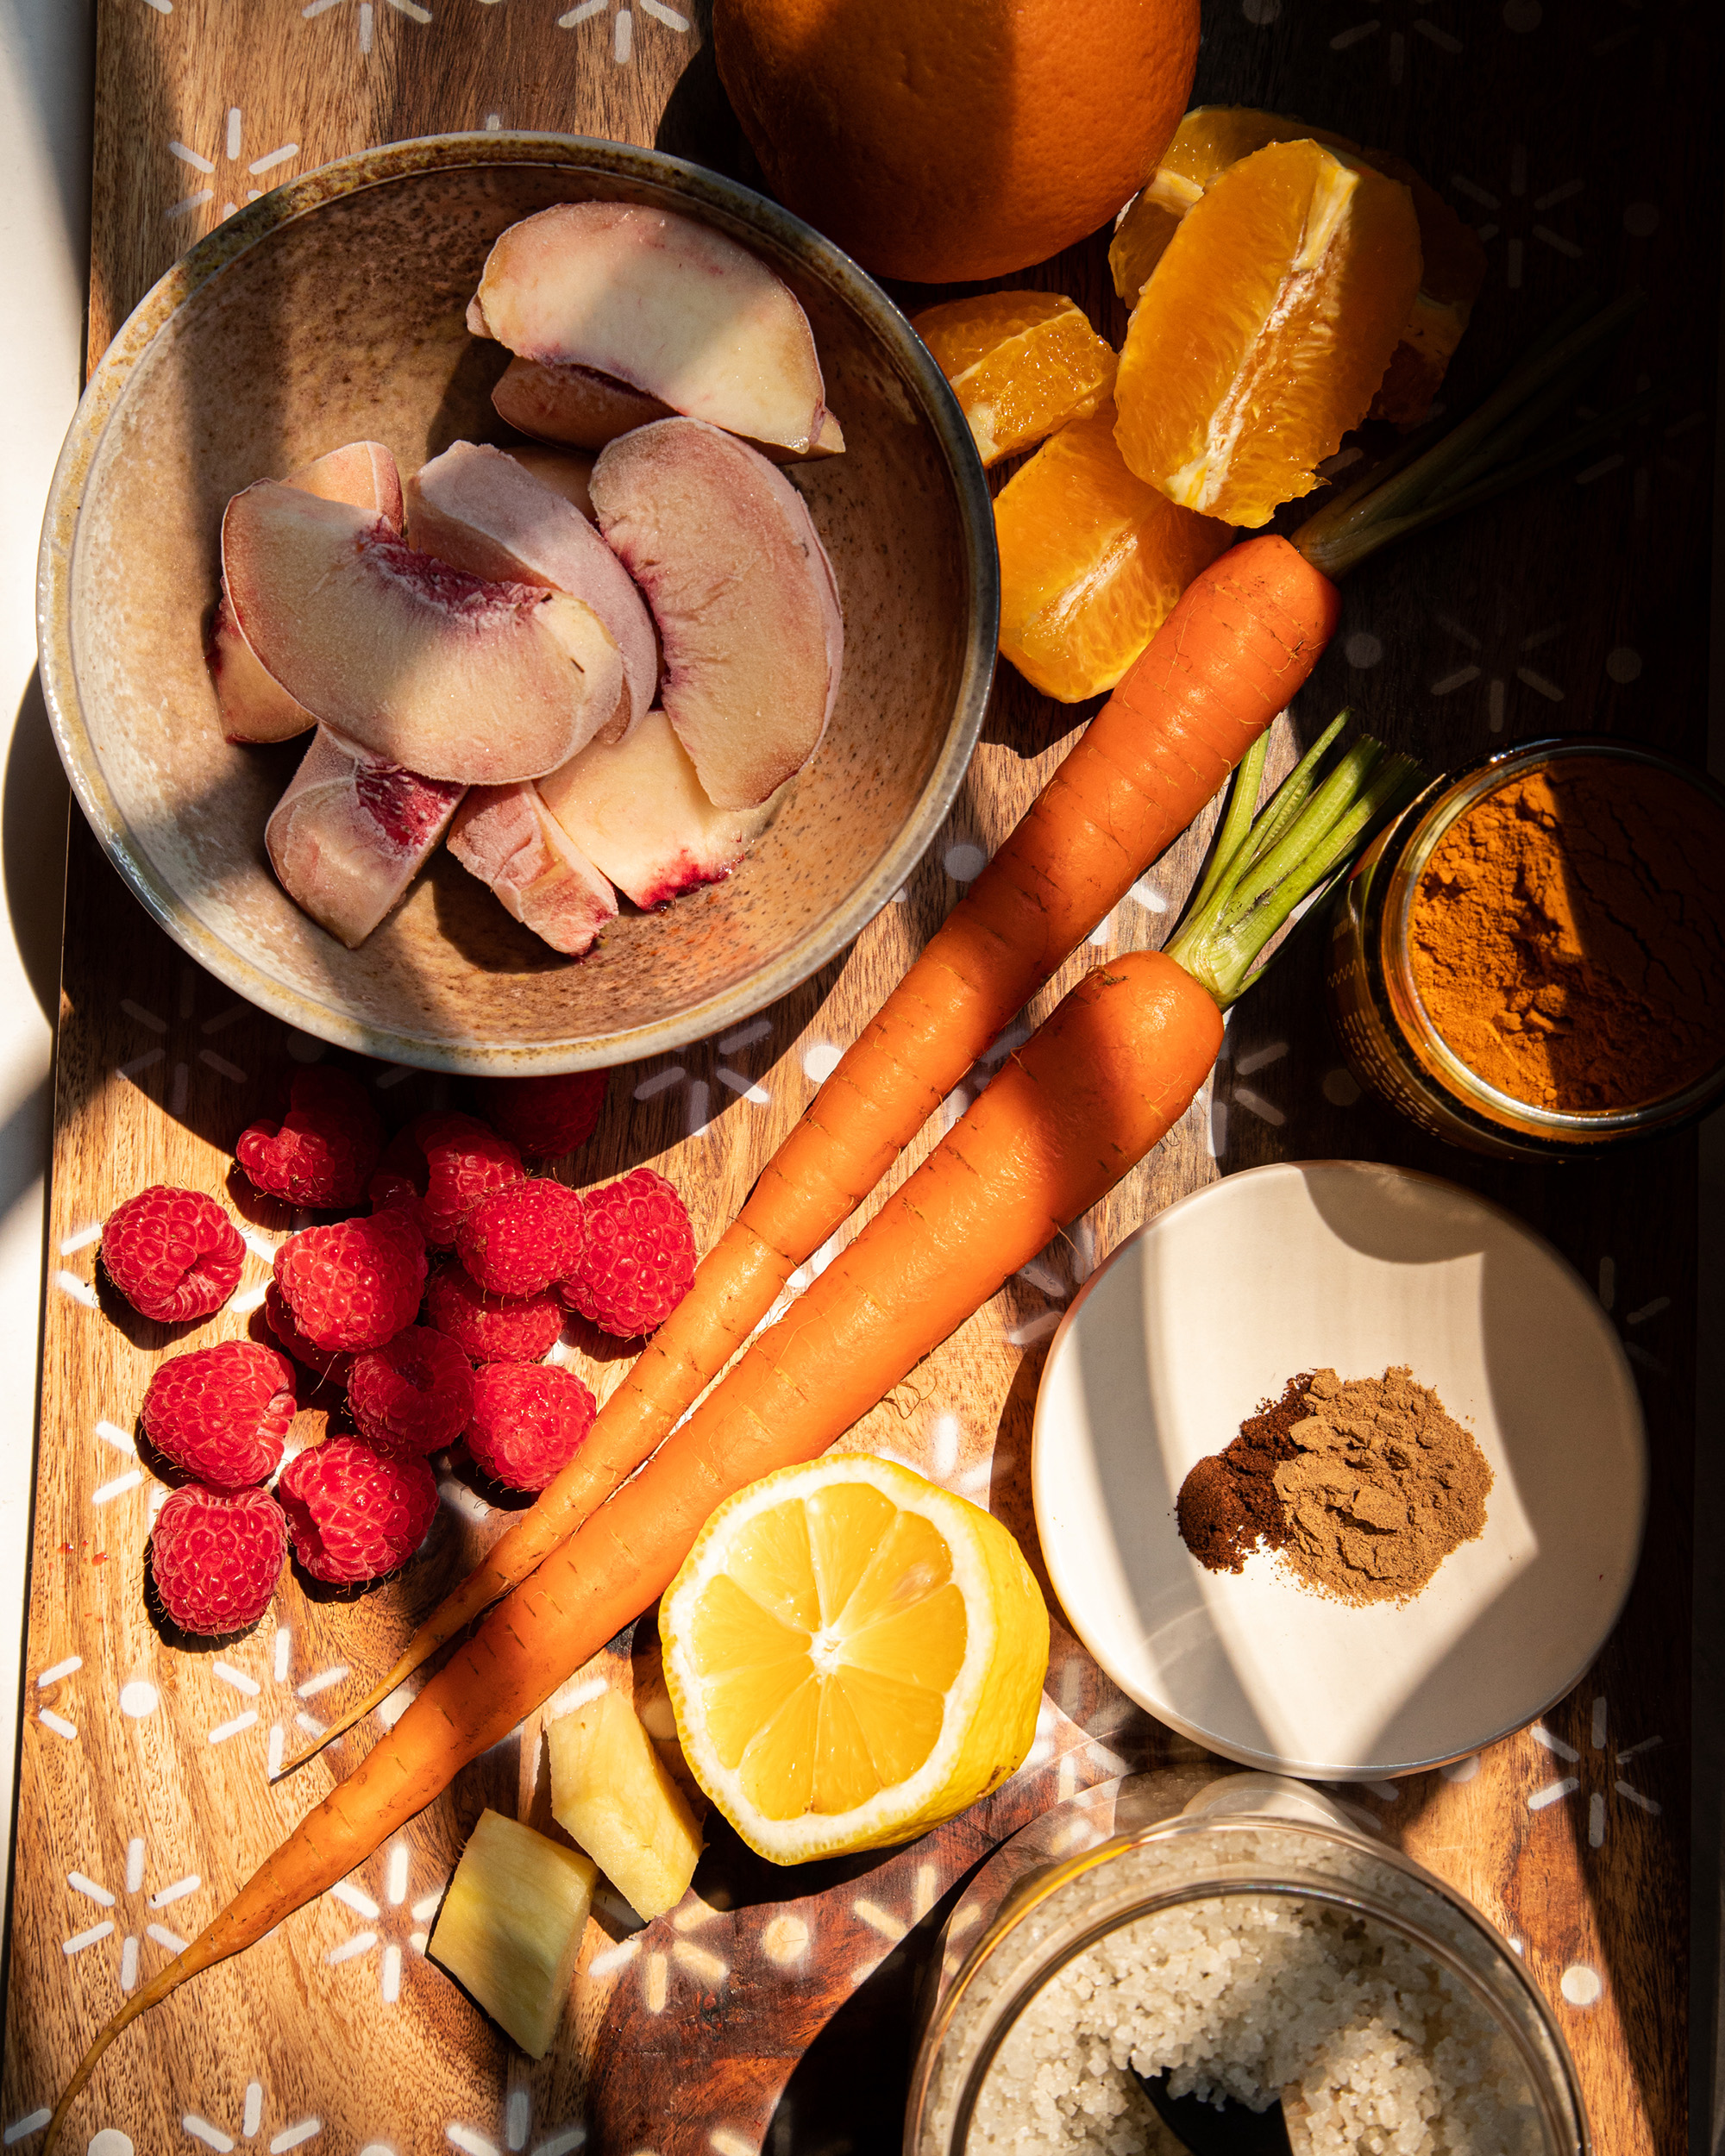 An overhead shot of ingredients for a golden peach sunrise smoothie, shot in harsh light.